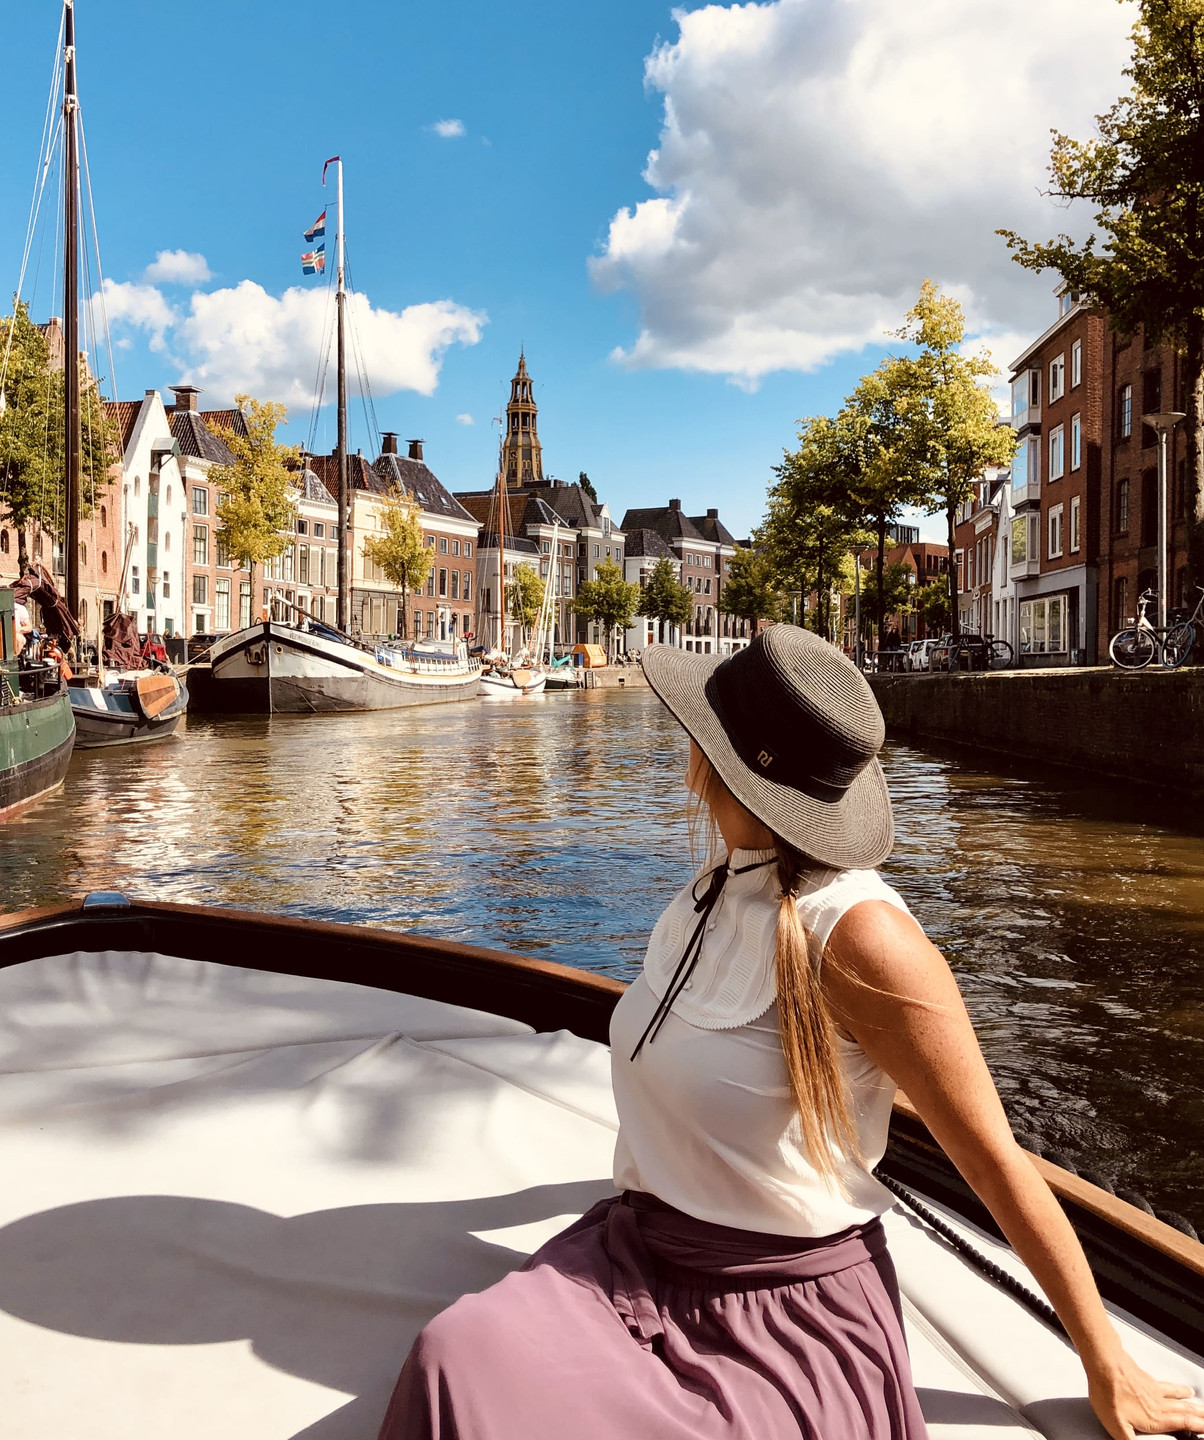 Exploring the canals of Groningen city-The Netherlands with Diepsloep